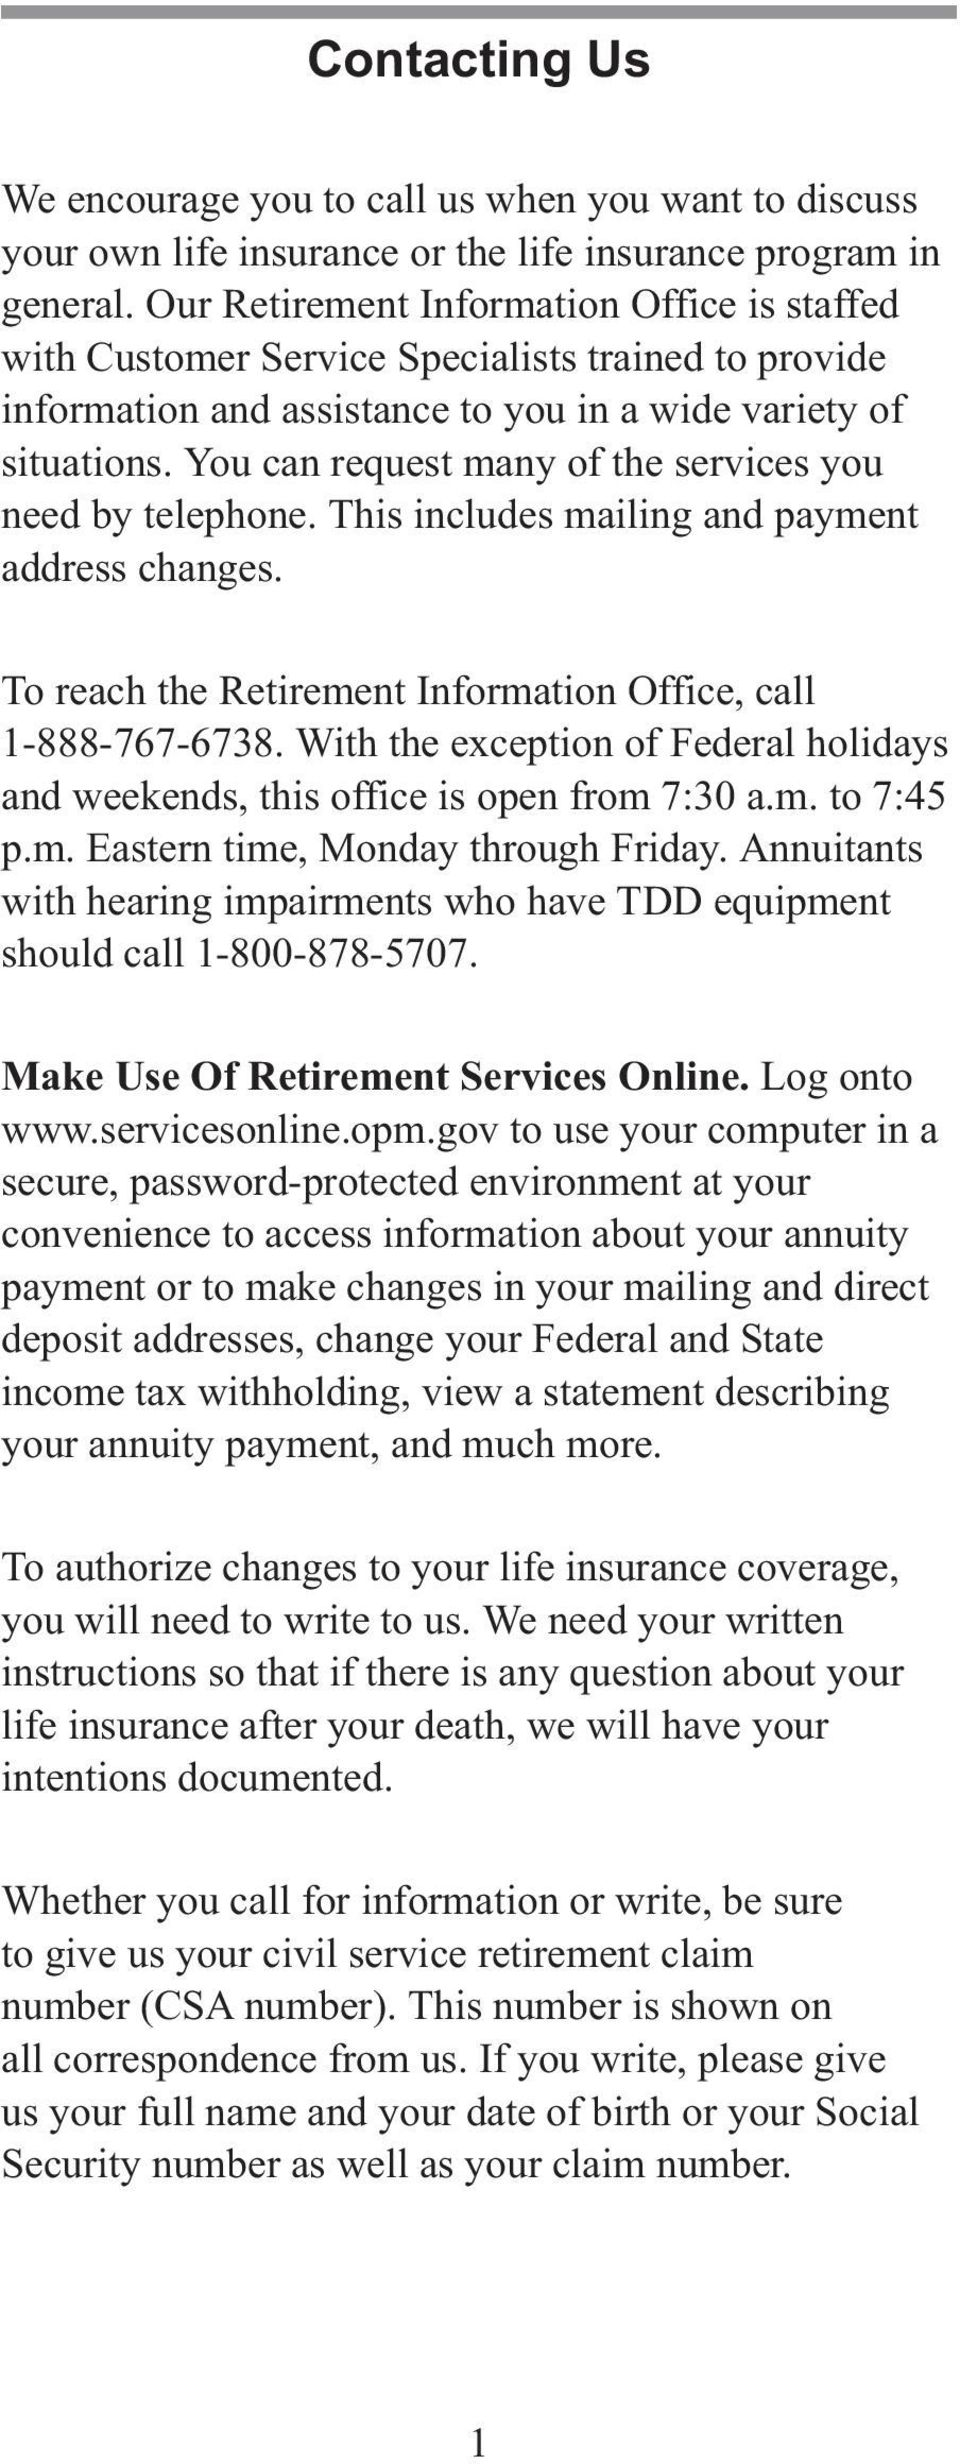 You can request many of the services you need by telephone. This includes mailing and payment address changes. To reach the Retirement Information Office, call 1-888-767-6738.